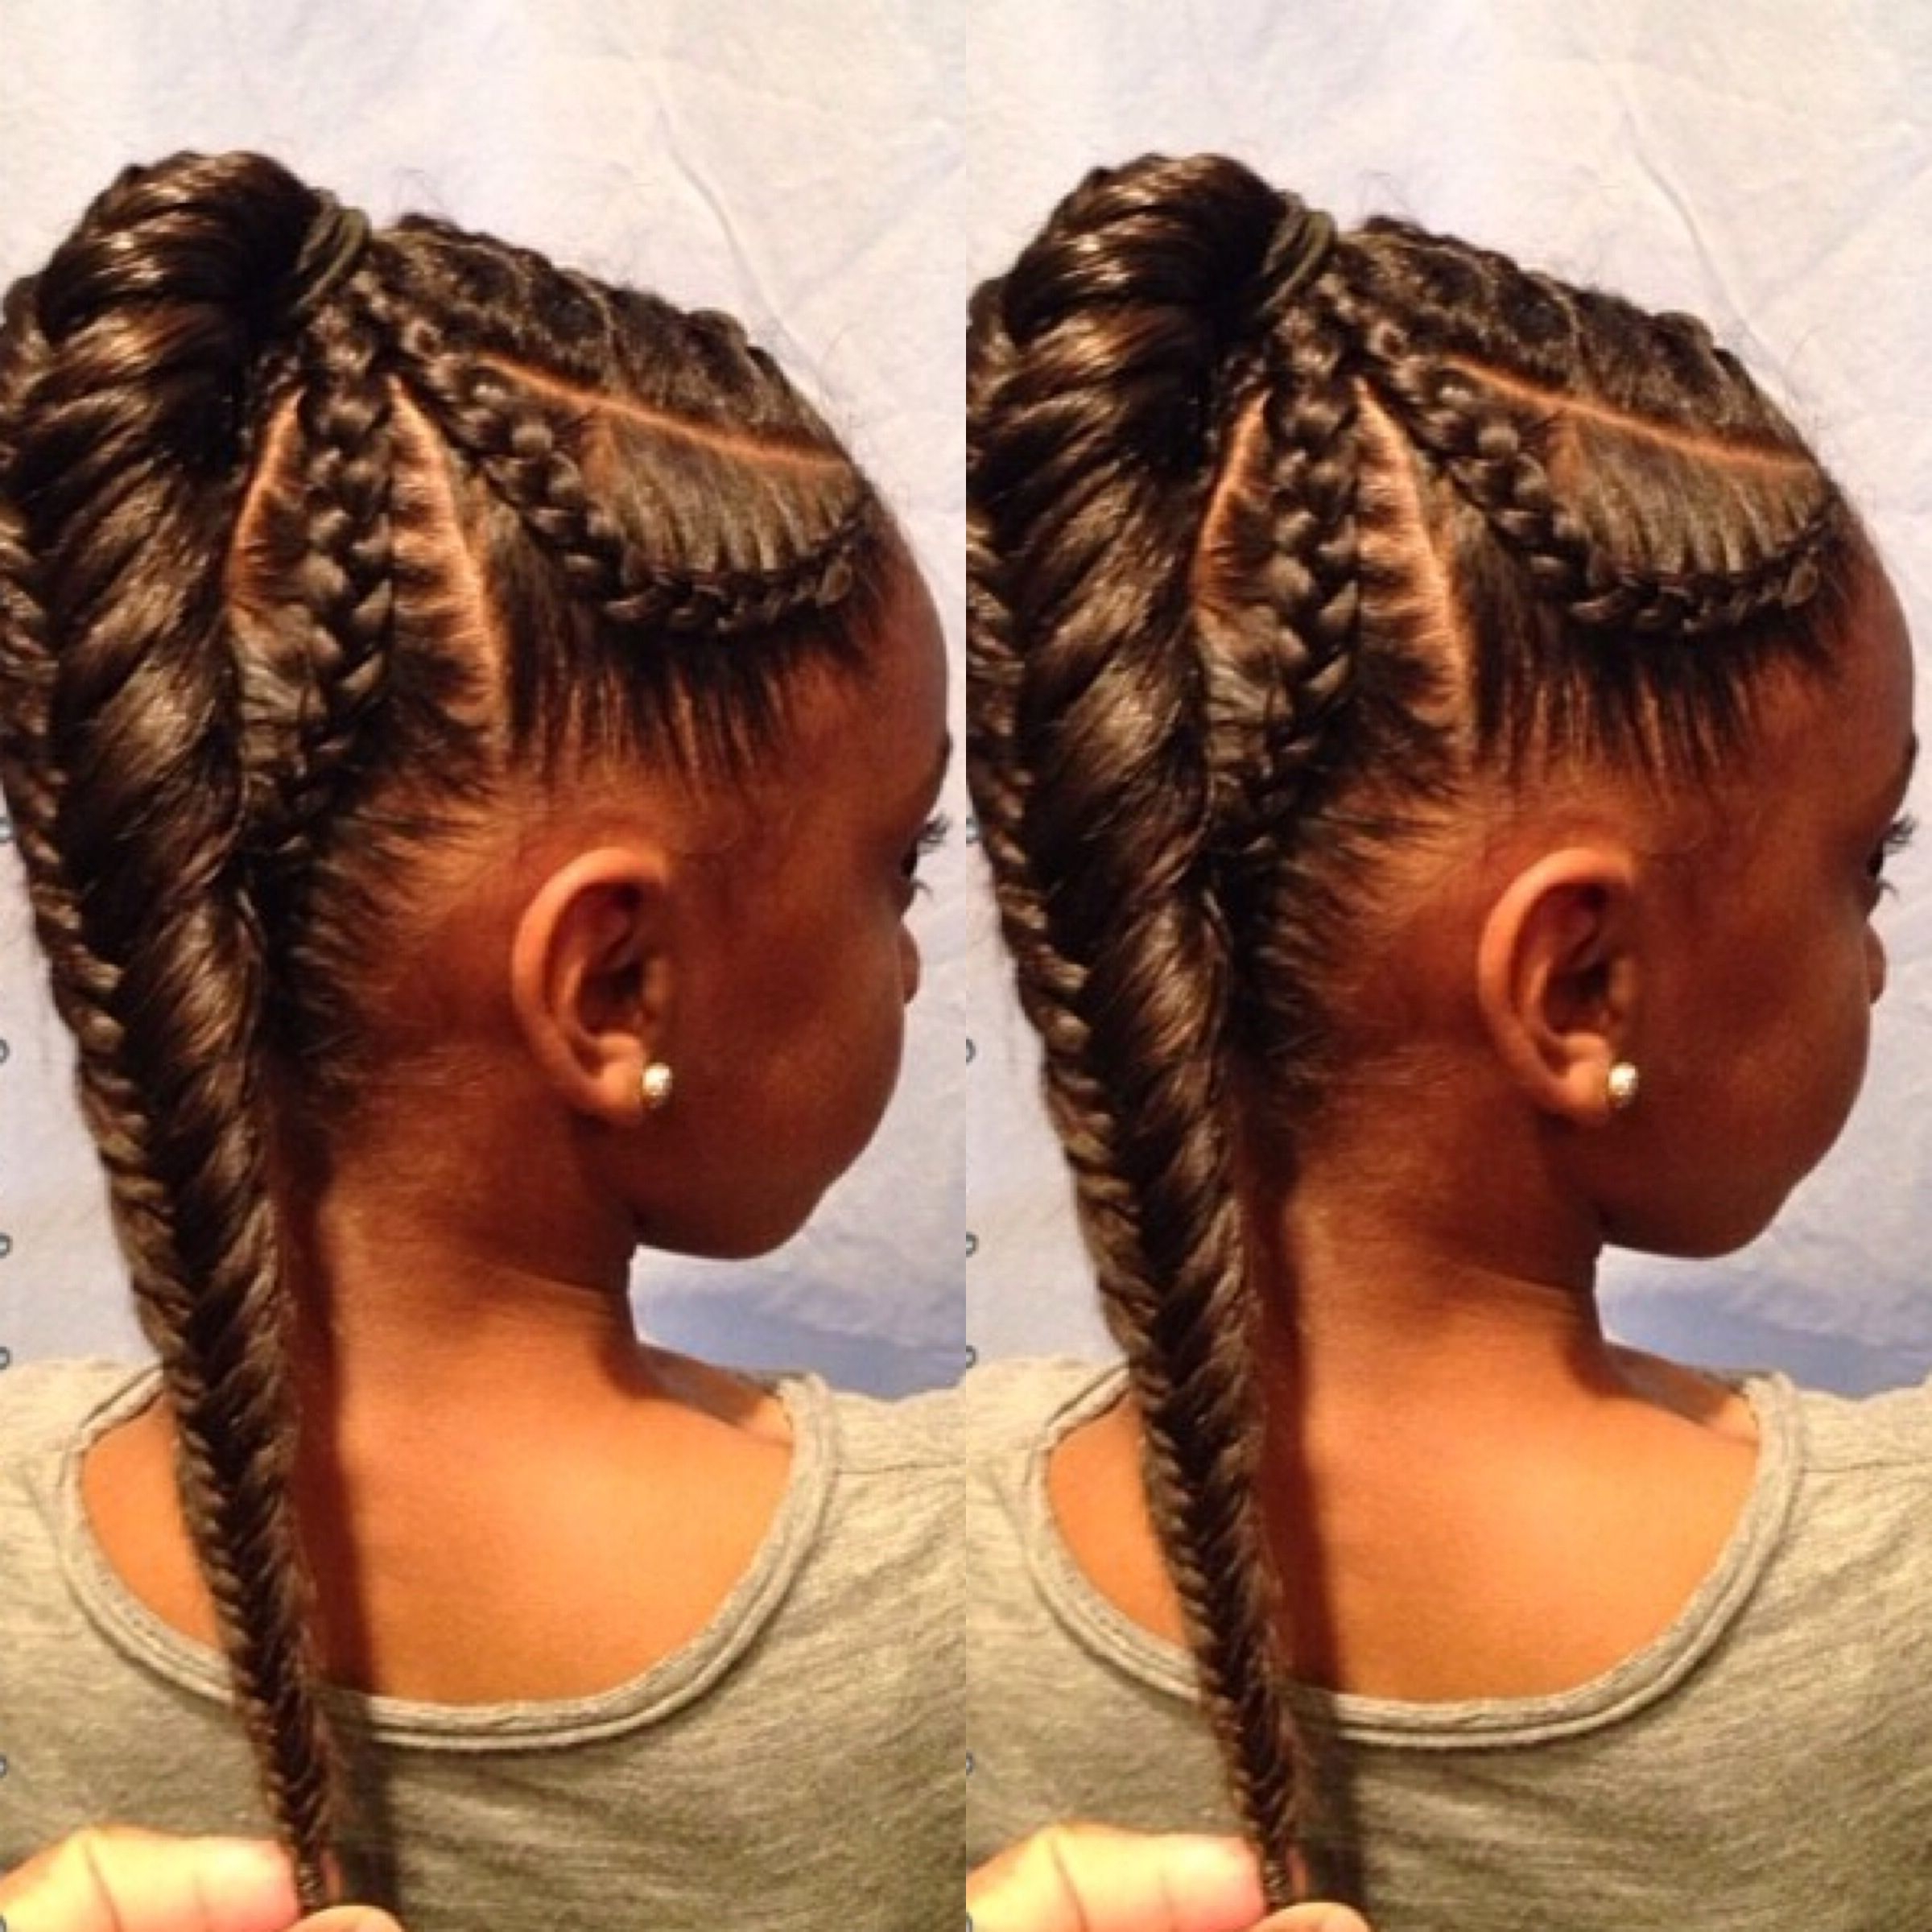 70 Best Black Braided Hairstyles That Turn Heads (View 5 of 20)